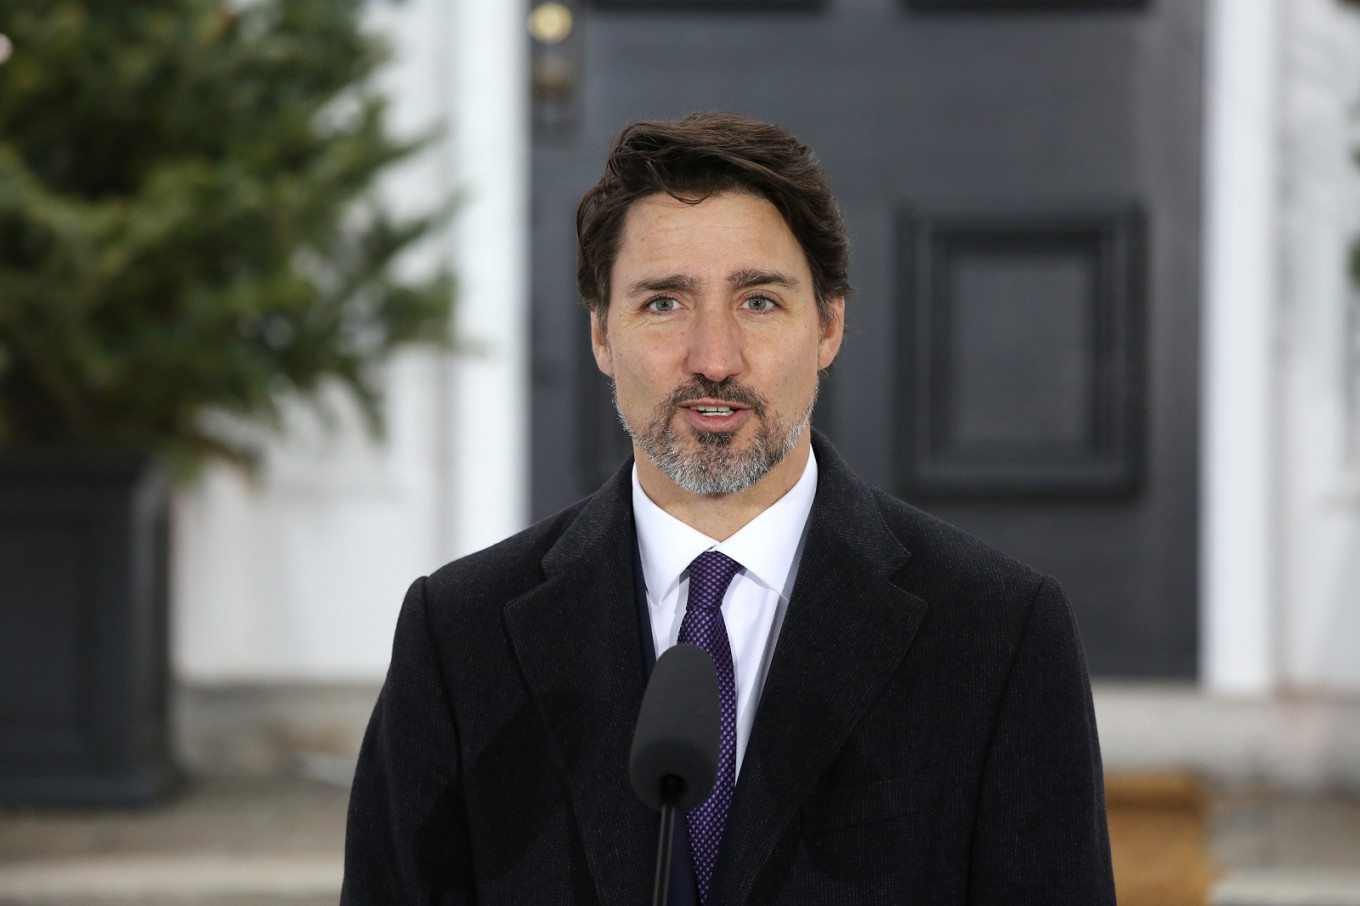 Trudeau leads Canadian celebrities in pandemic plea to stay home